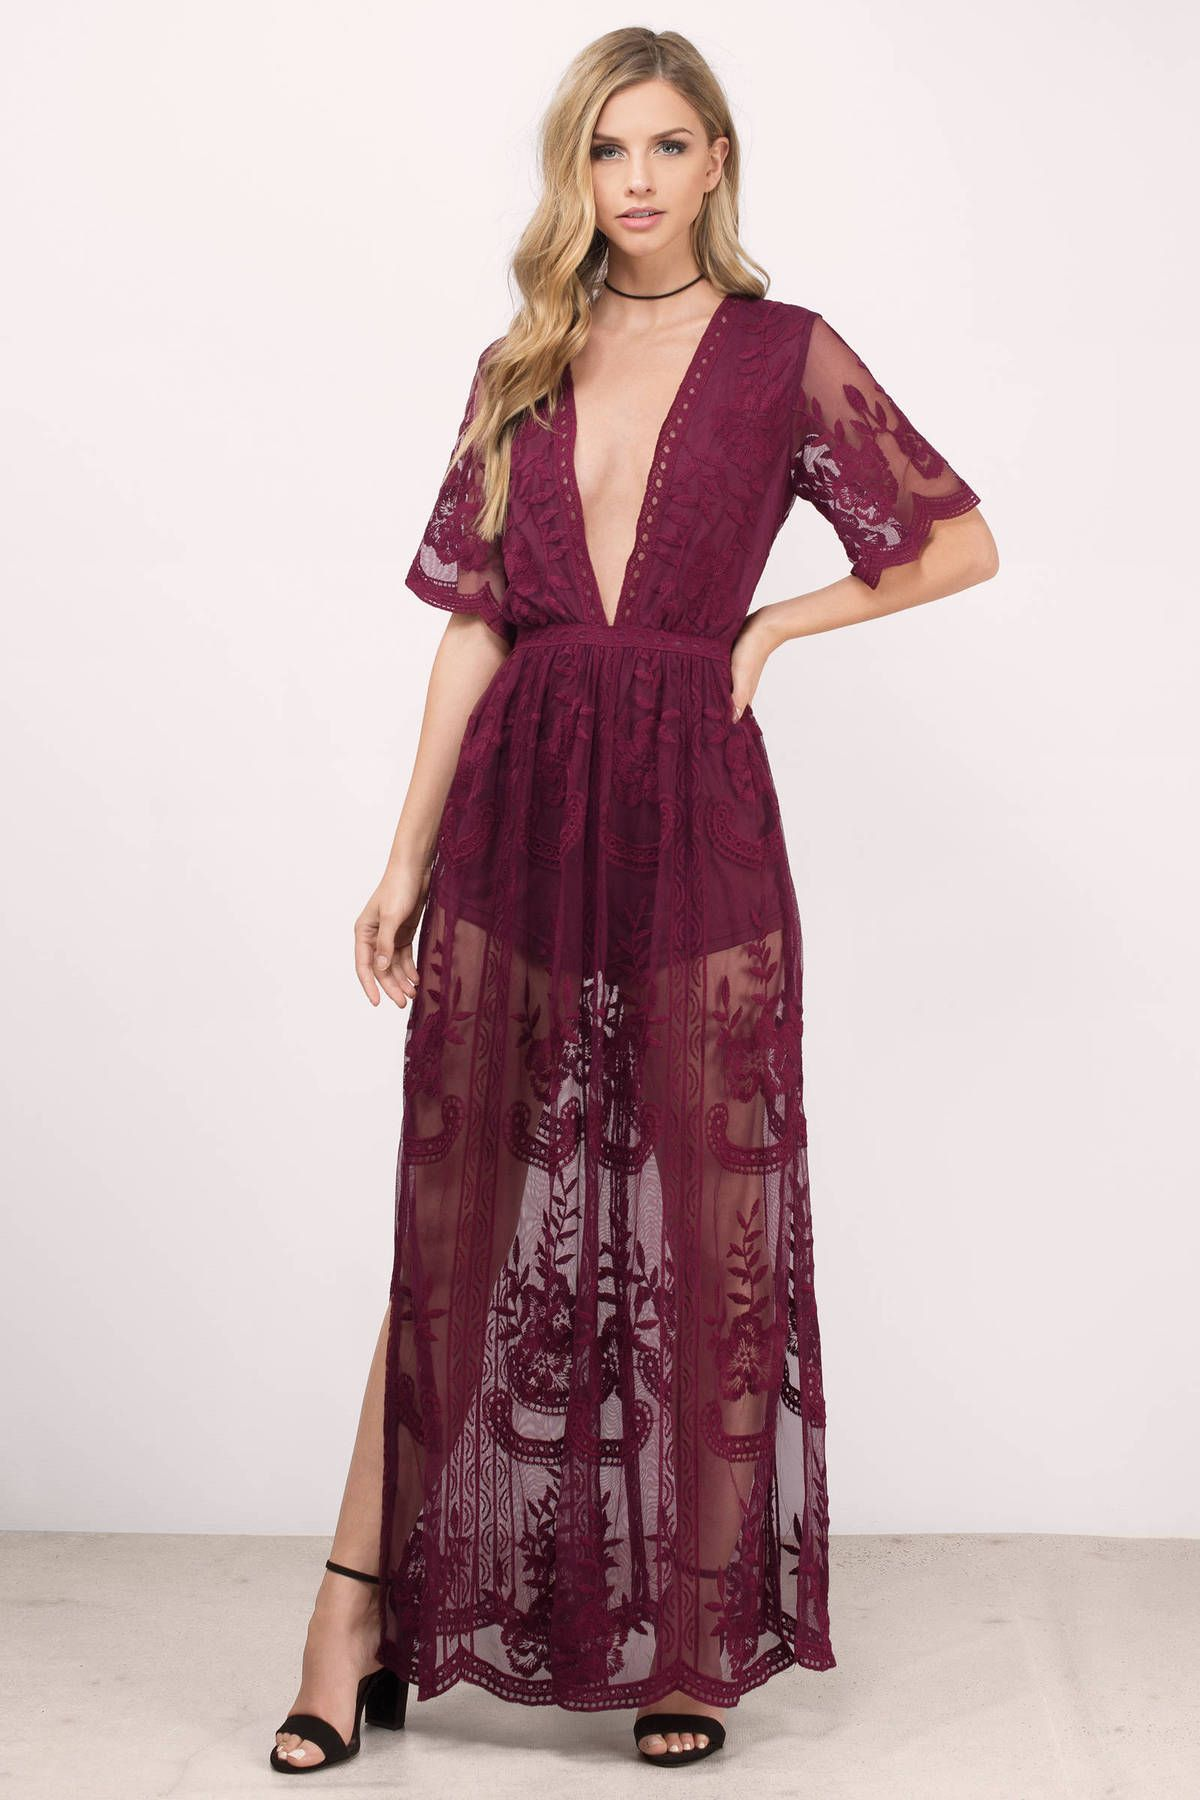 Madonna Lace Overlay Romper In Wine Lace Maxi Dress Maxi Dress Lace Maxi Romper [ 1800 x 1200 Pixel ]